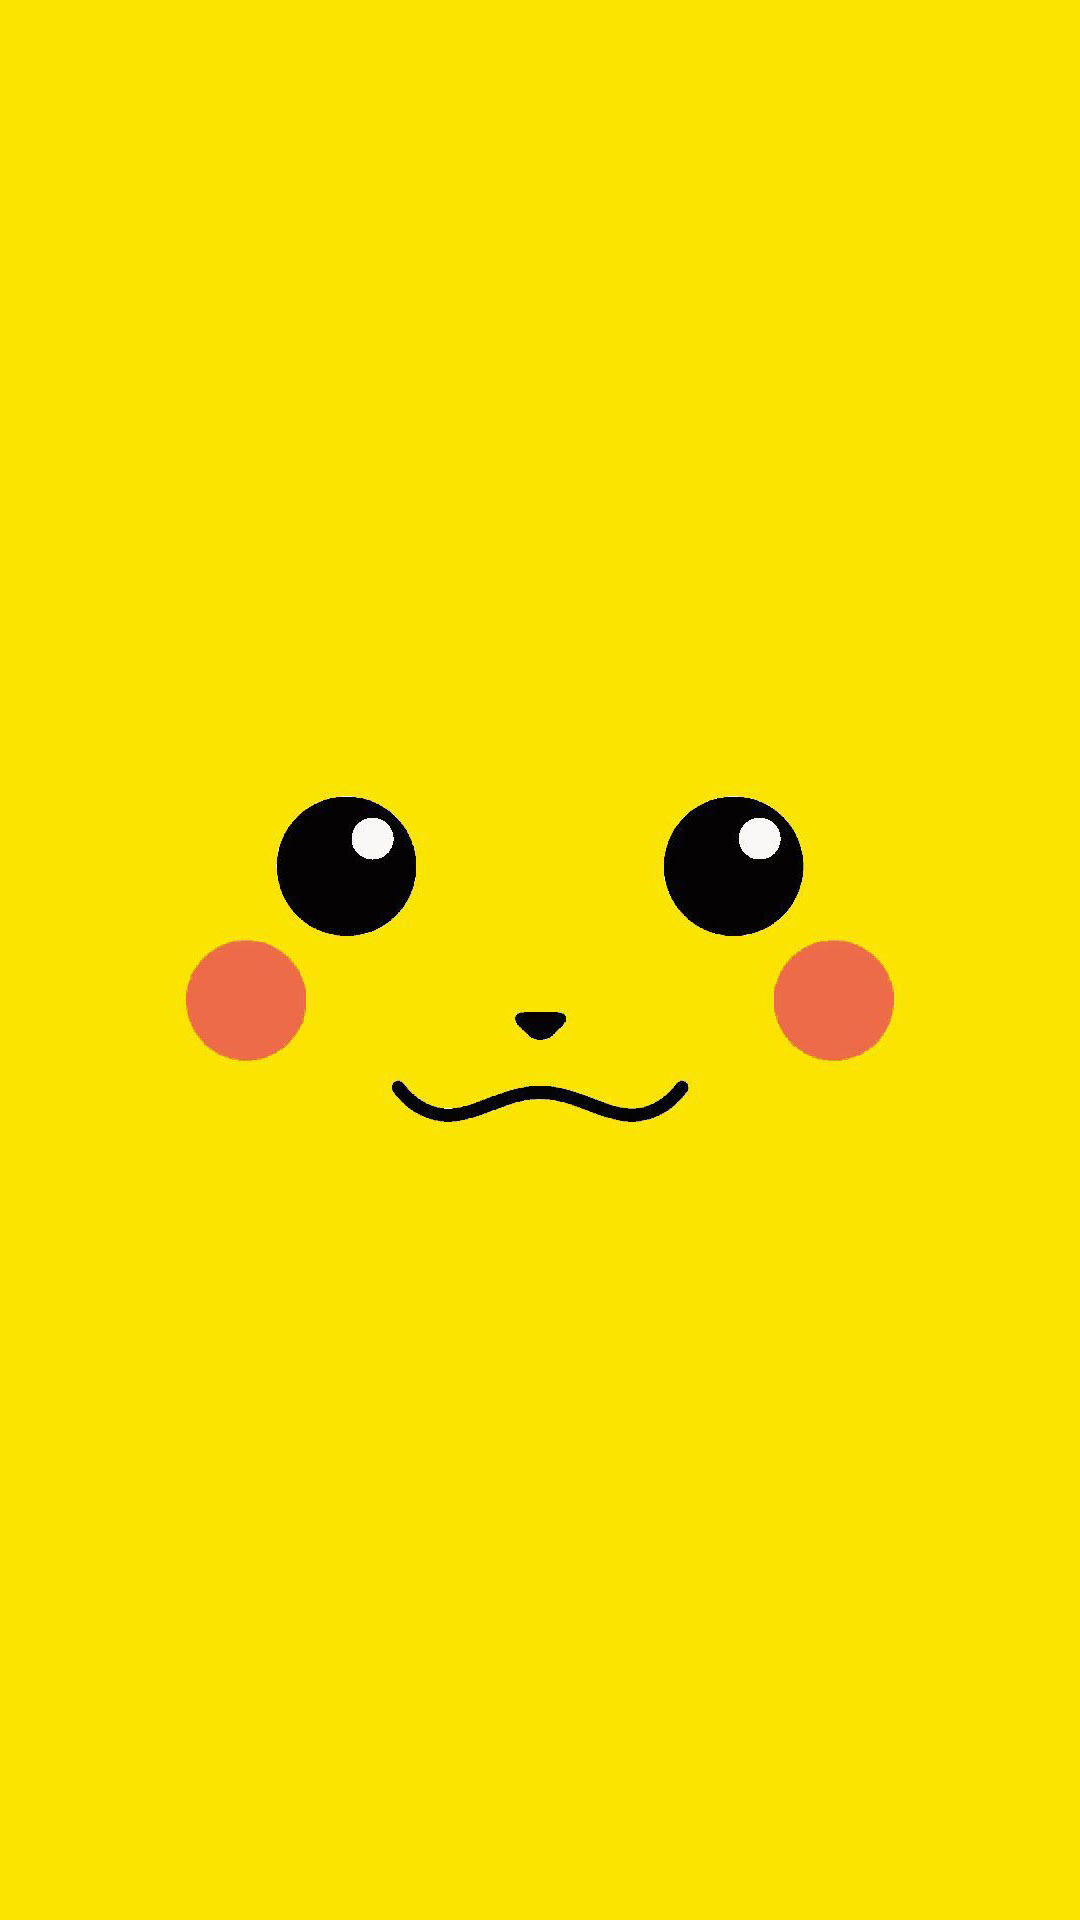 pikachu pokemon iphone wallpaper